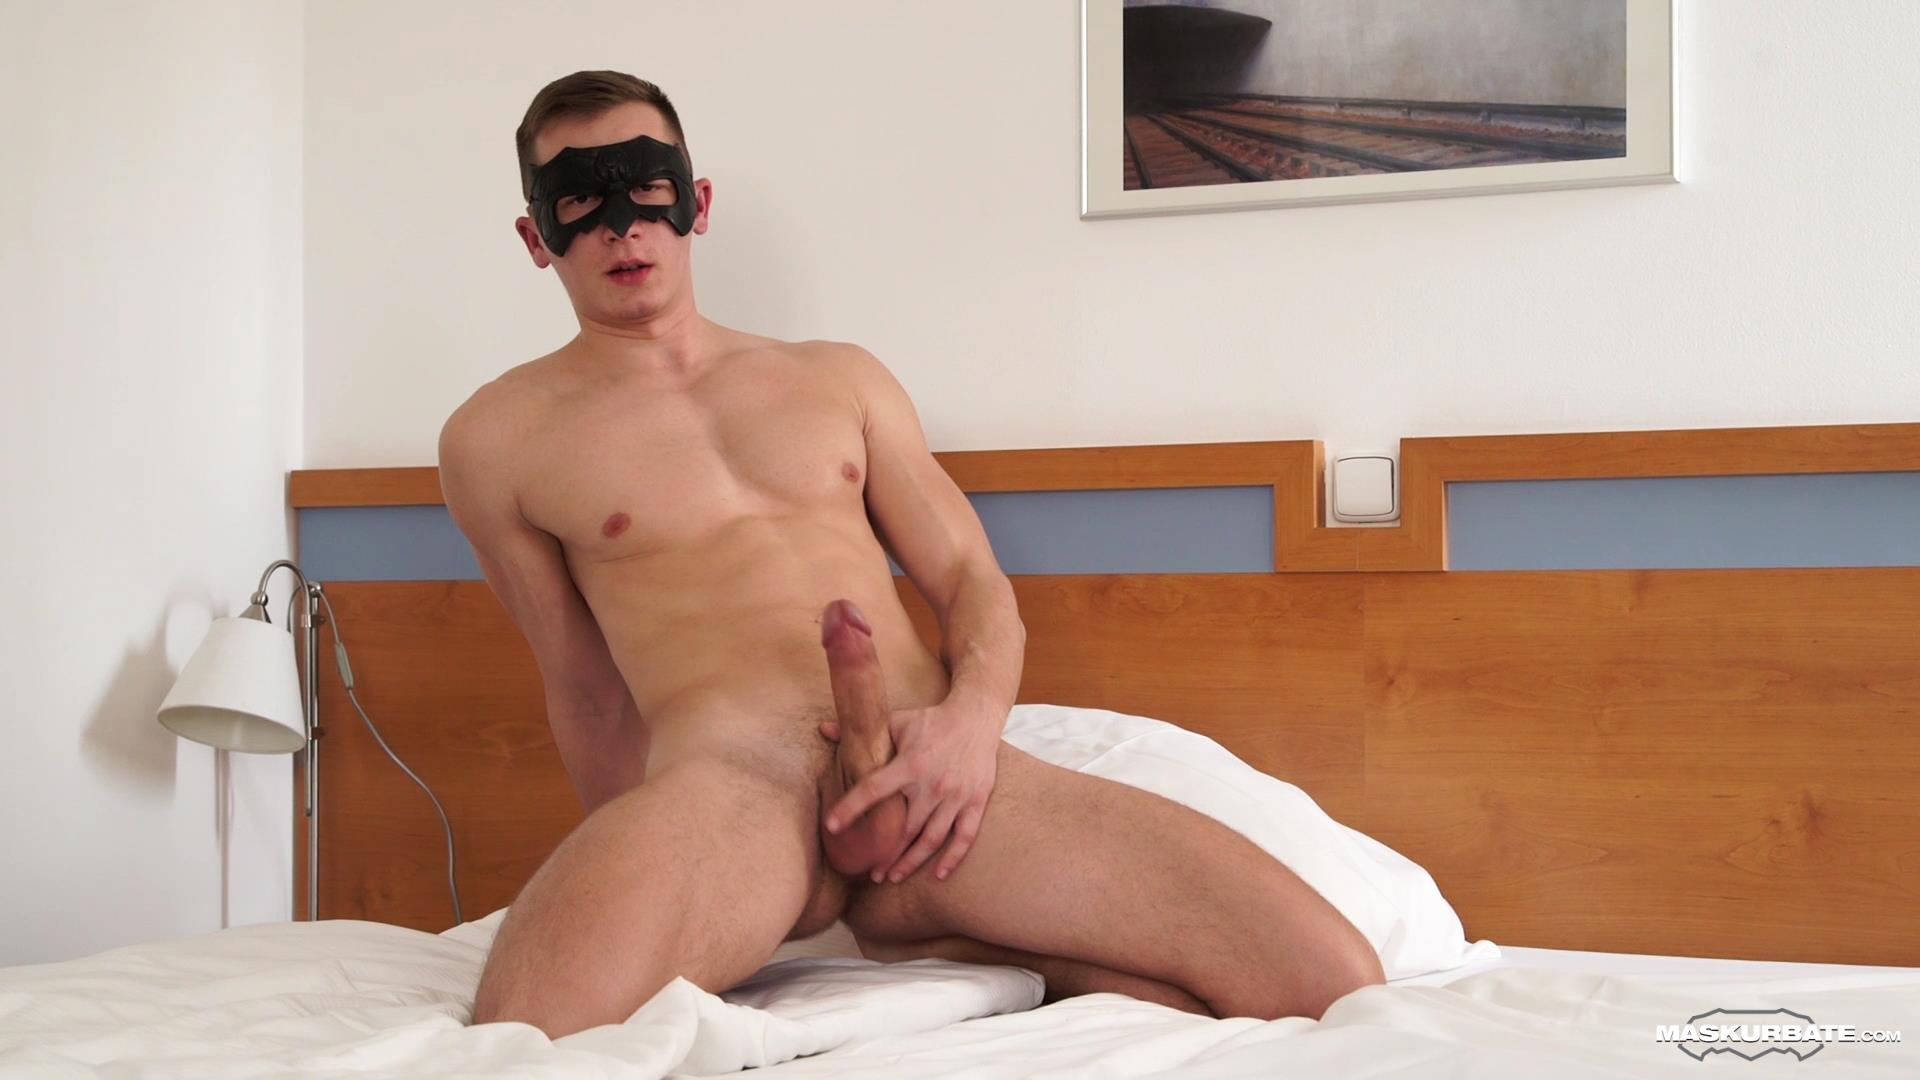 Maskurbate-Andy-Hotel-Bellman-Strokes-Big-Uncut-Cock-12 Paying The Hotel Bellman To Jerk His Big Uncut Cock In My Room